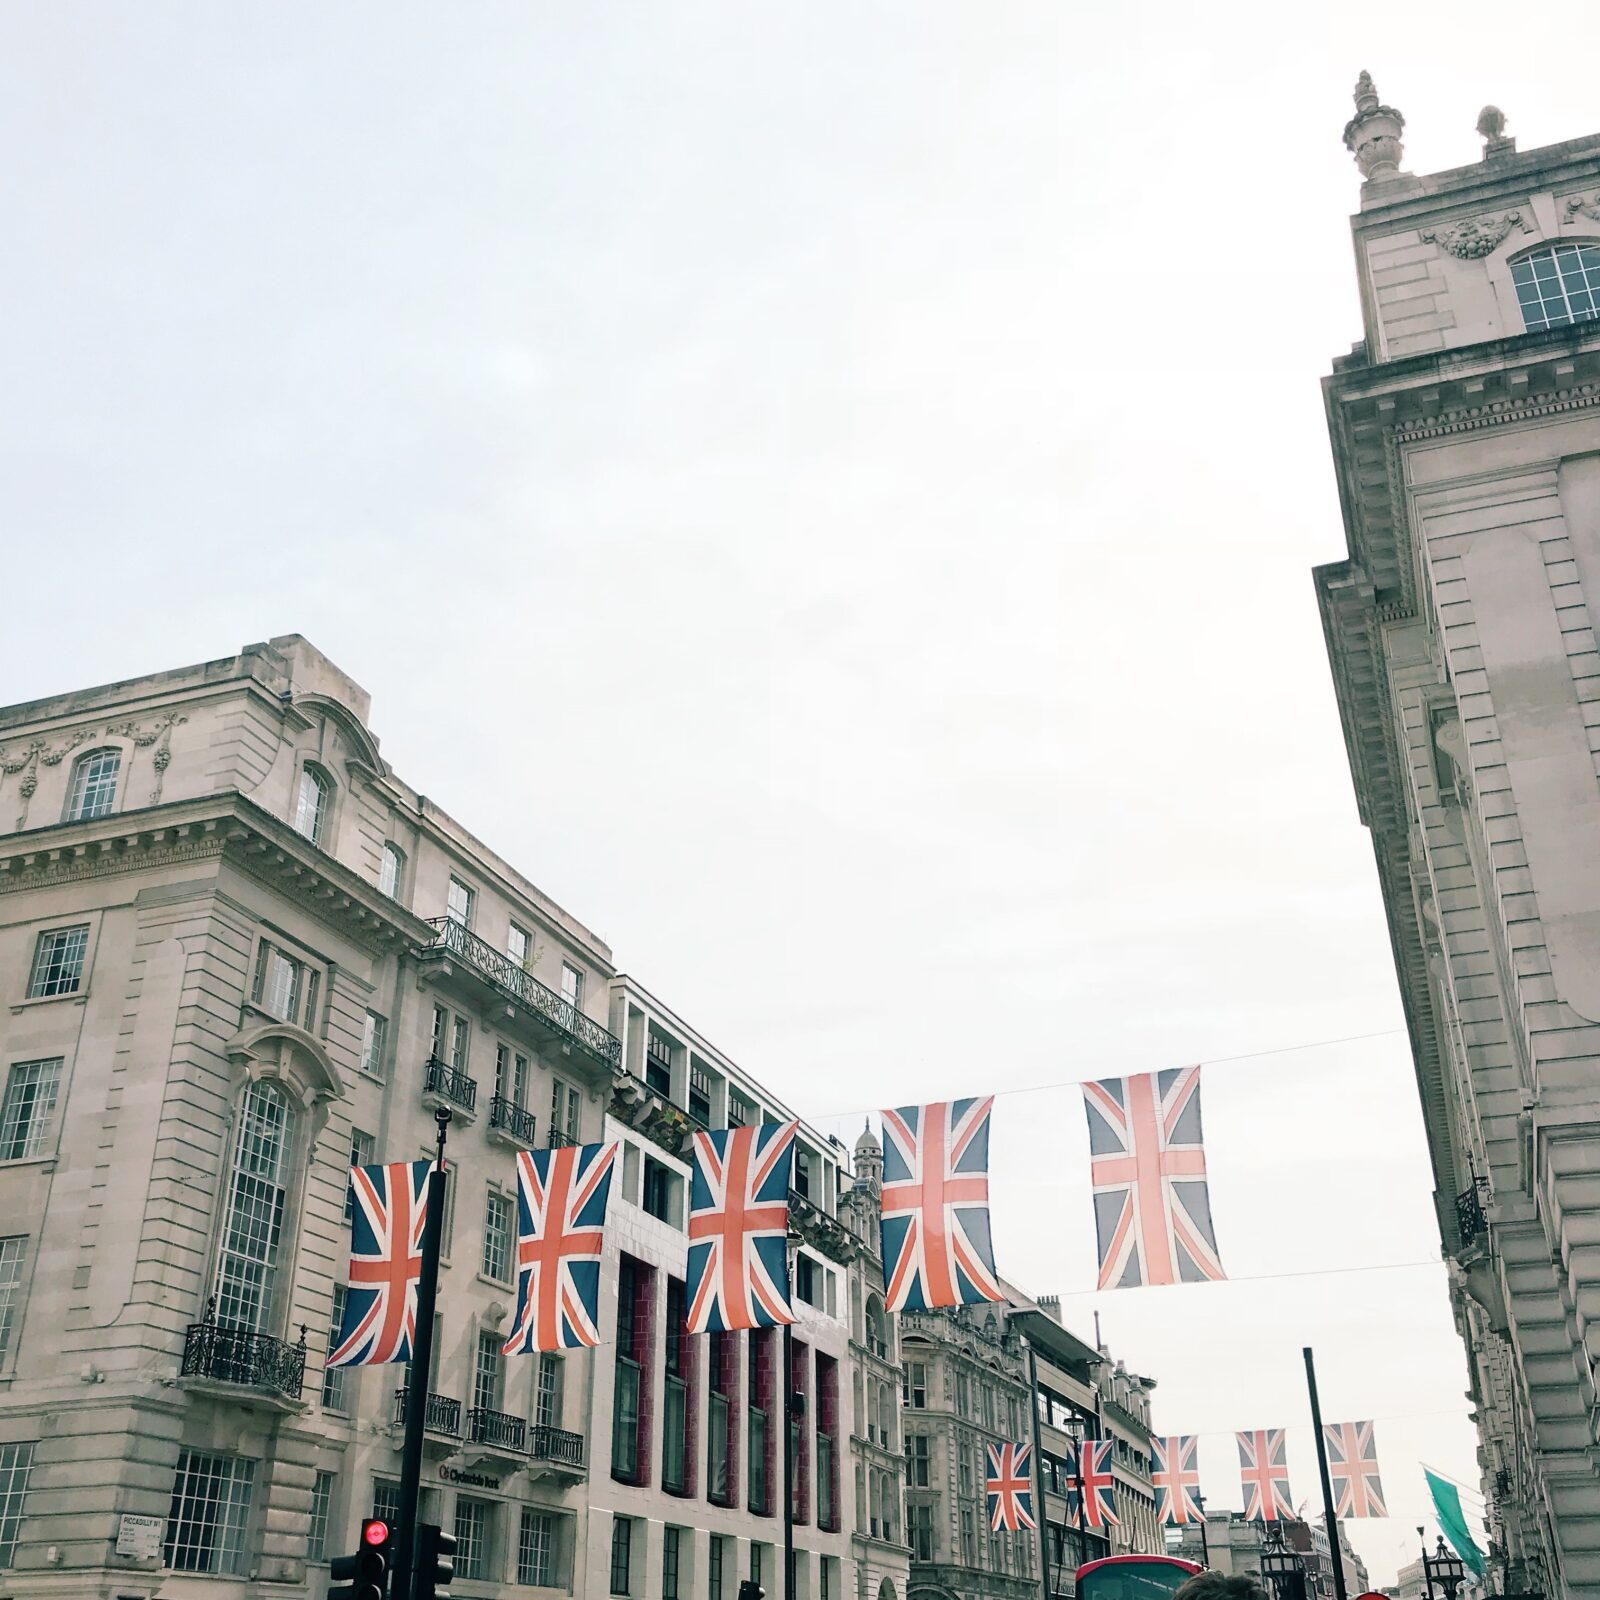 regent street union jack flags edit seven london city guide 2018